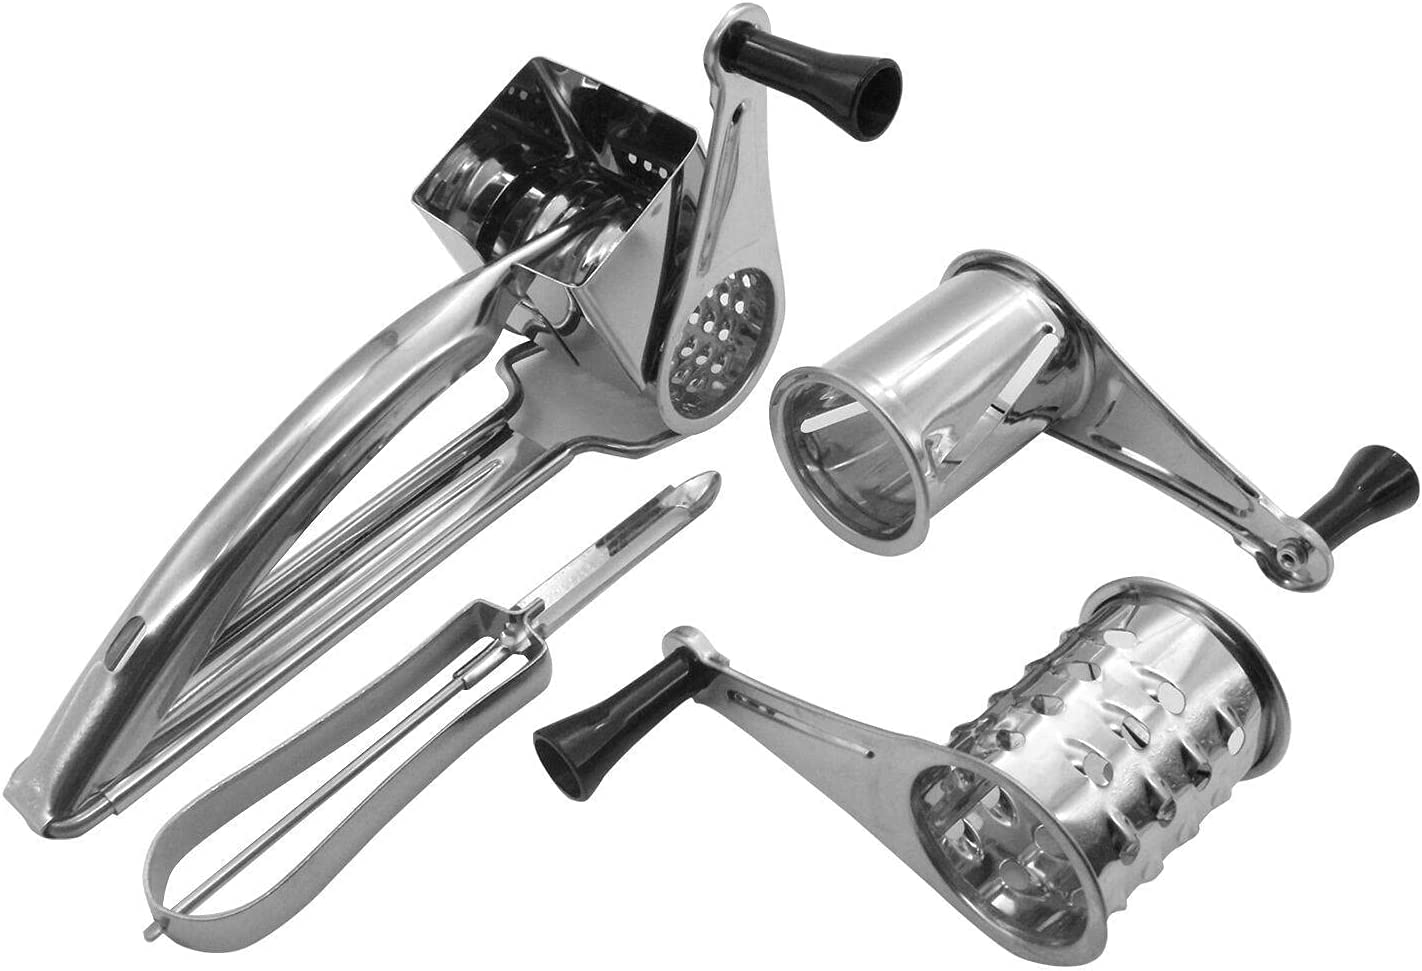 Stainless El Paso Mall Steel Rotary Cheese Grater Shipping included Vegetable Peele Slice Shred